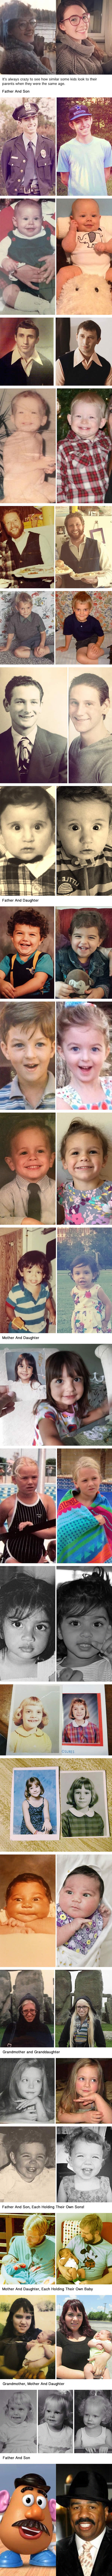 24 incredible side-by-side photos of parents and their kids at the same age